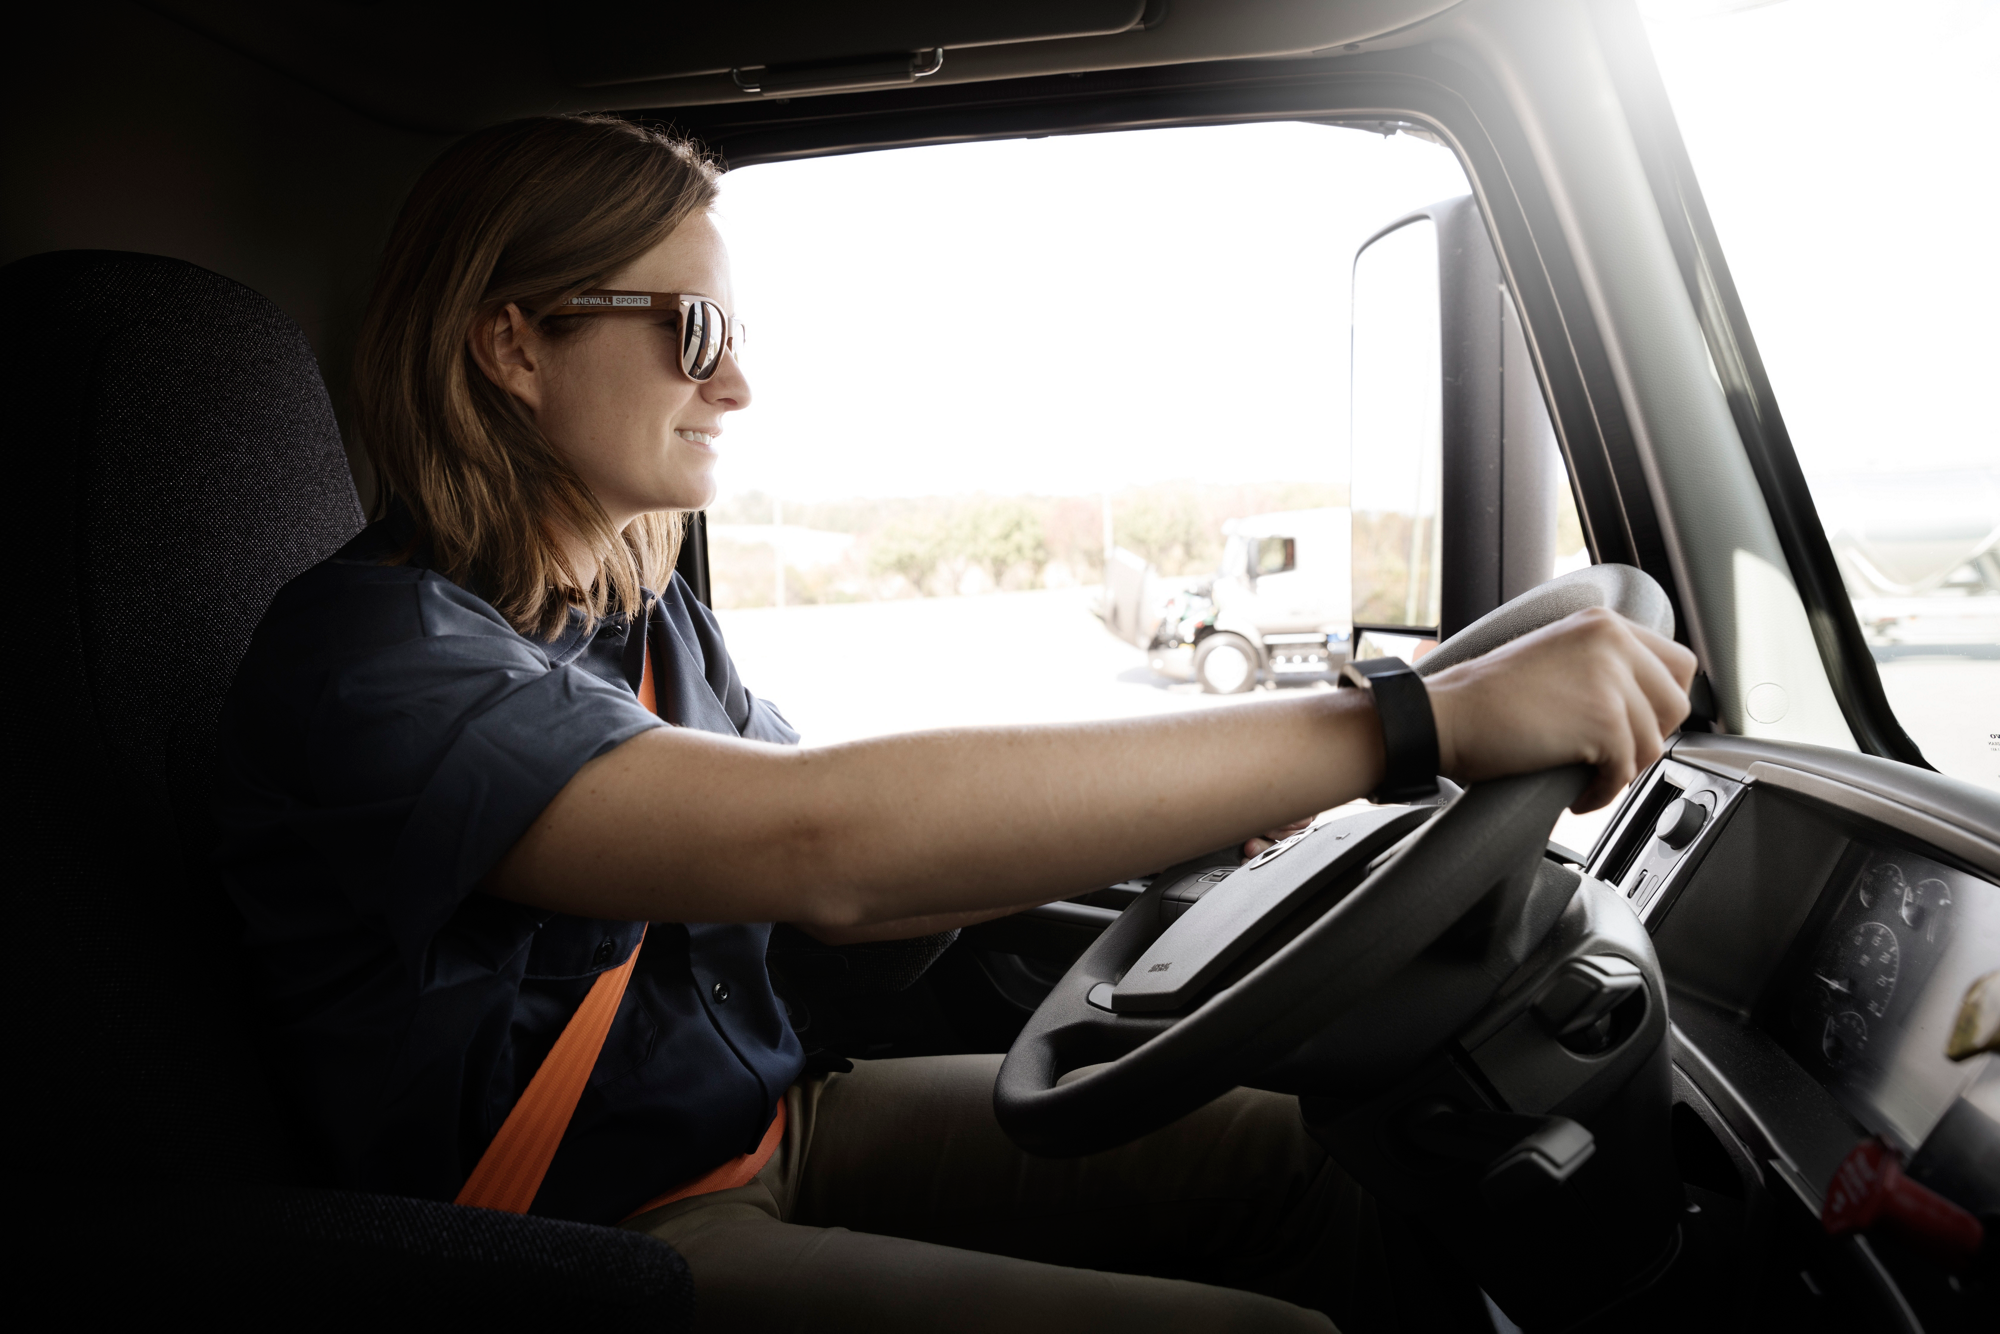 Volvo says automation won't displace drivers - Truck News